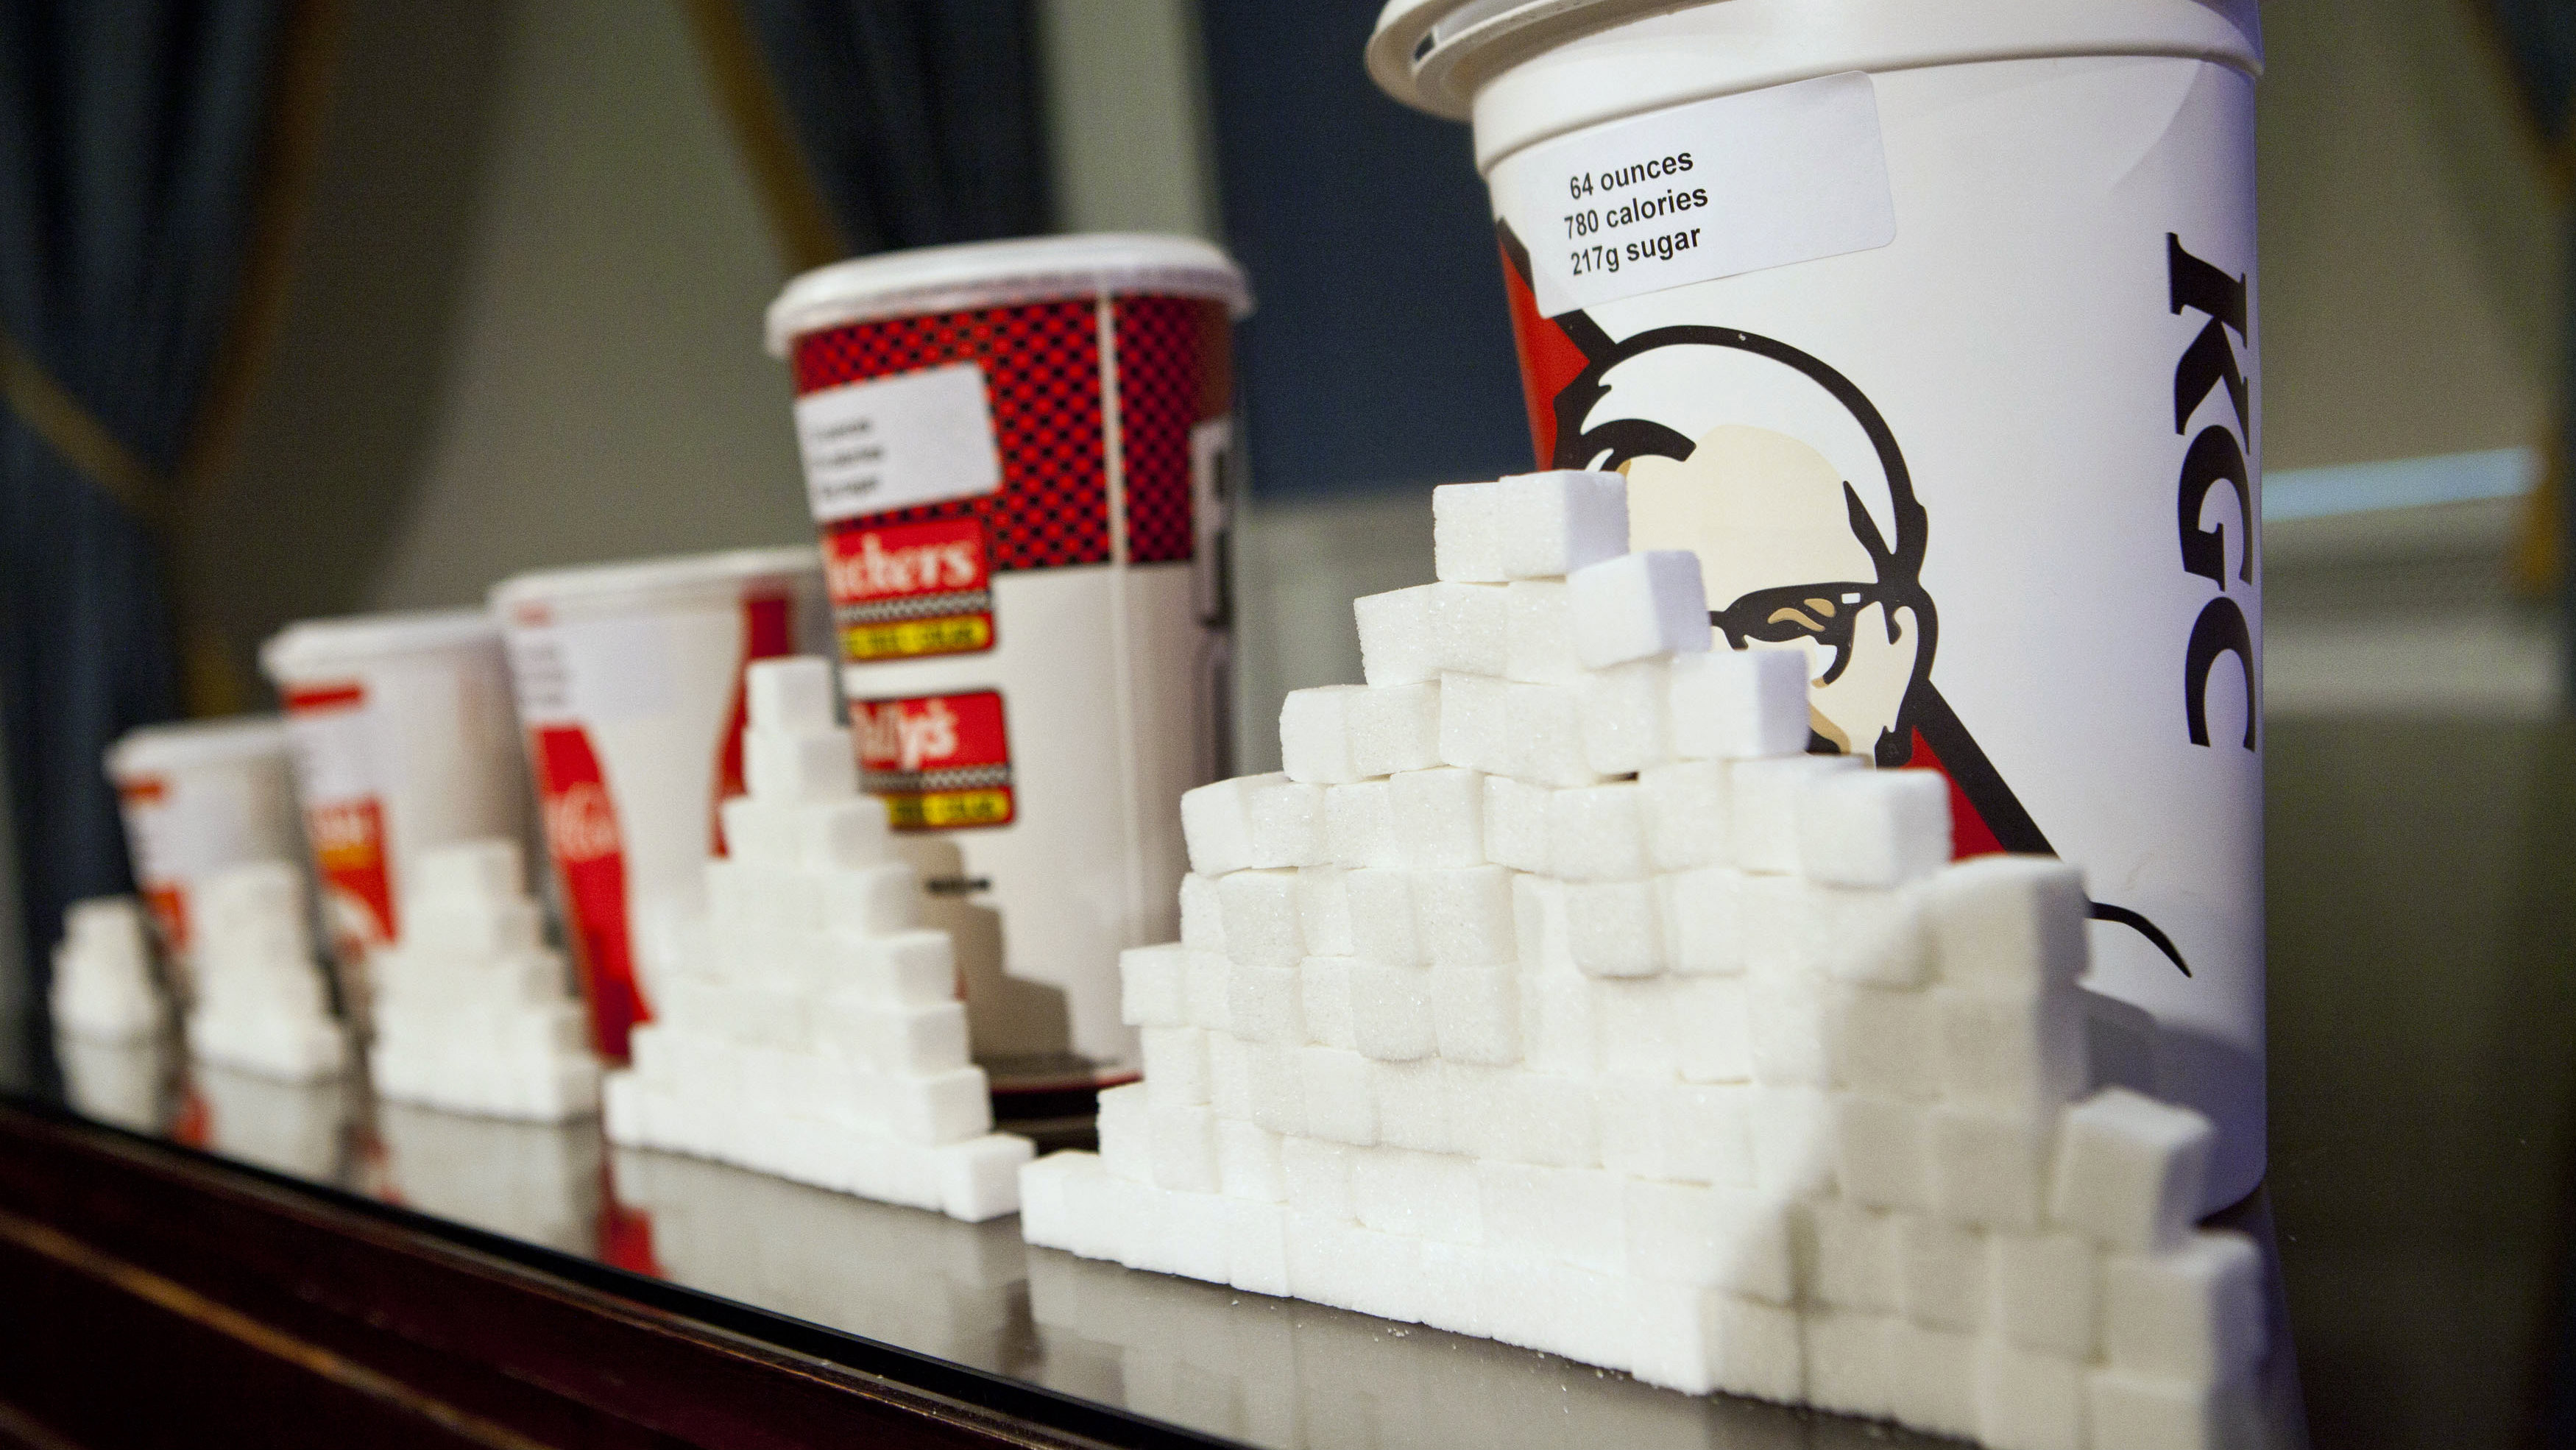 A 64-ounce drink is displayed alongside other soft drink cup sizes at a news conference at City Hall in New York, May 31, 2012. Under a new law proposed by New York City Mayor Michael Bloomberg, all soft drinks over 16 ounces will be banned in restaurants and stores that fall under the jurisdiction of New York City. The proposed law is a part of the mayor's Obesity Task Force initiative and is aimed at lowering city-wide obesity.